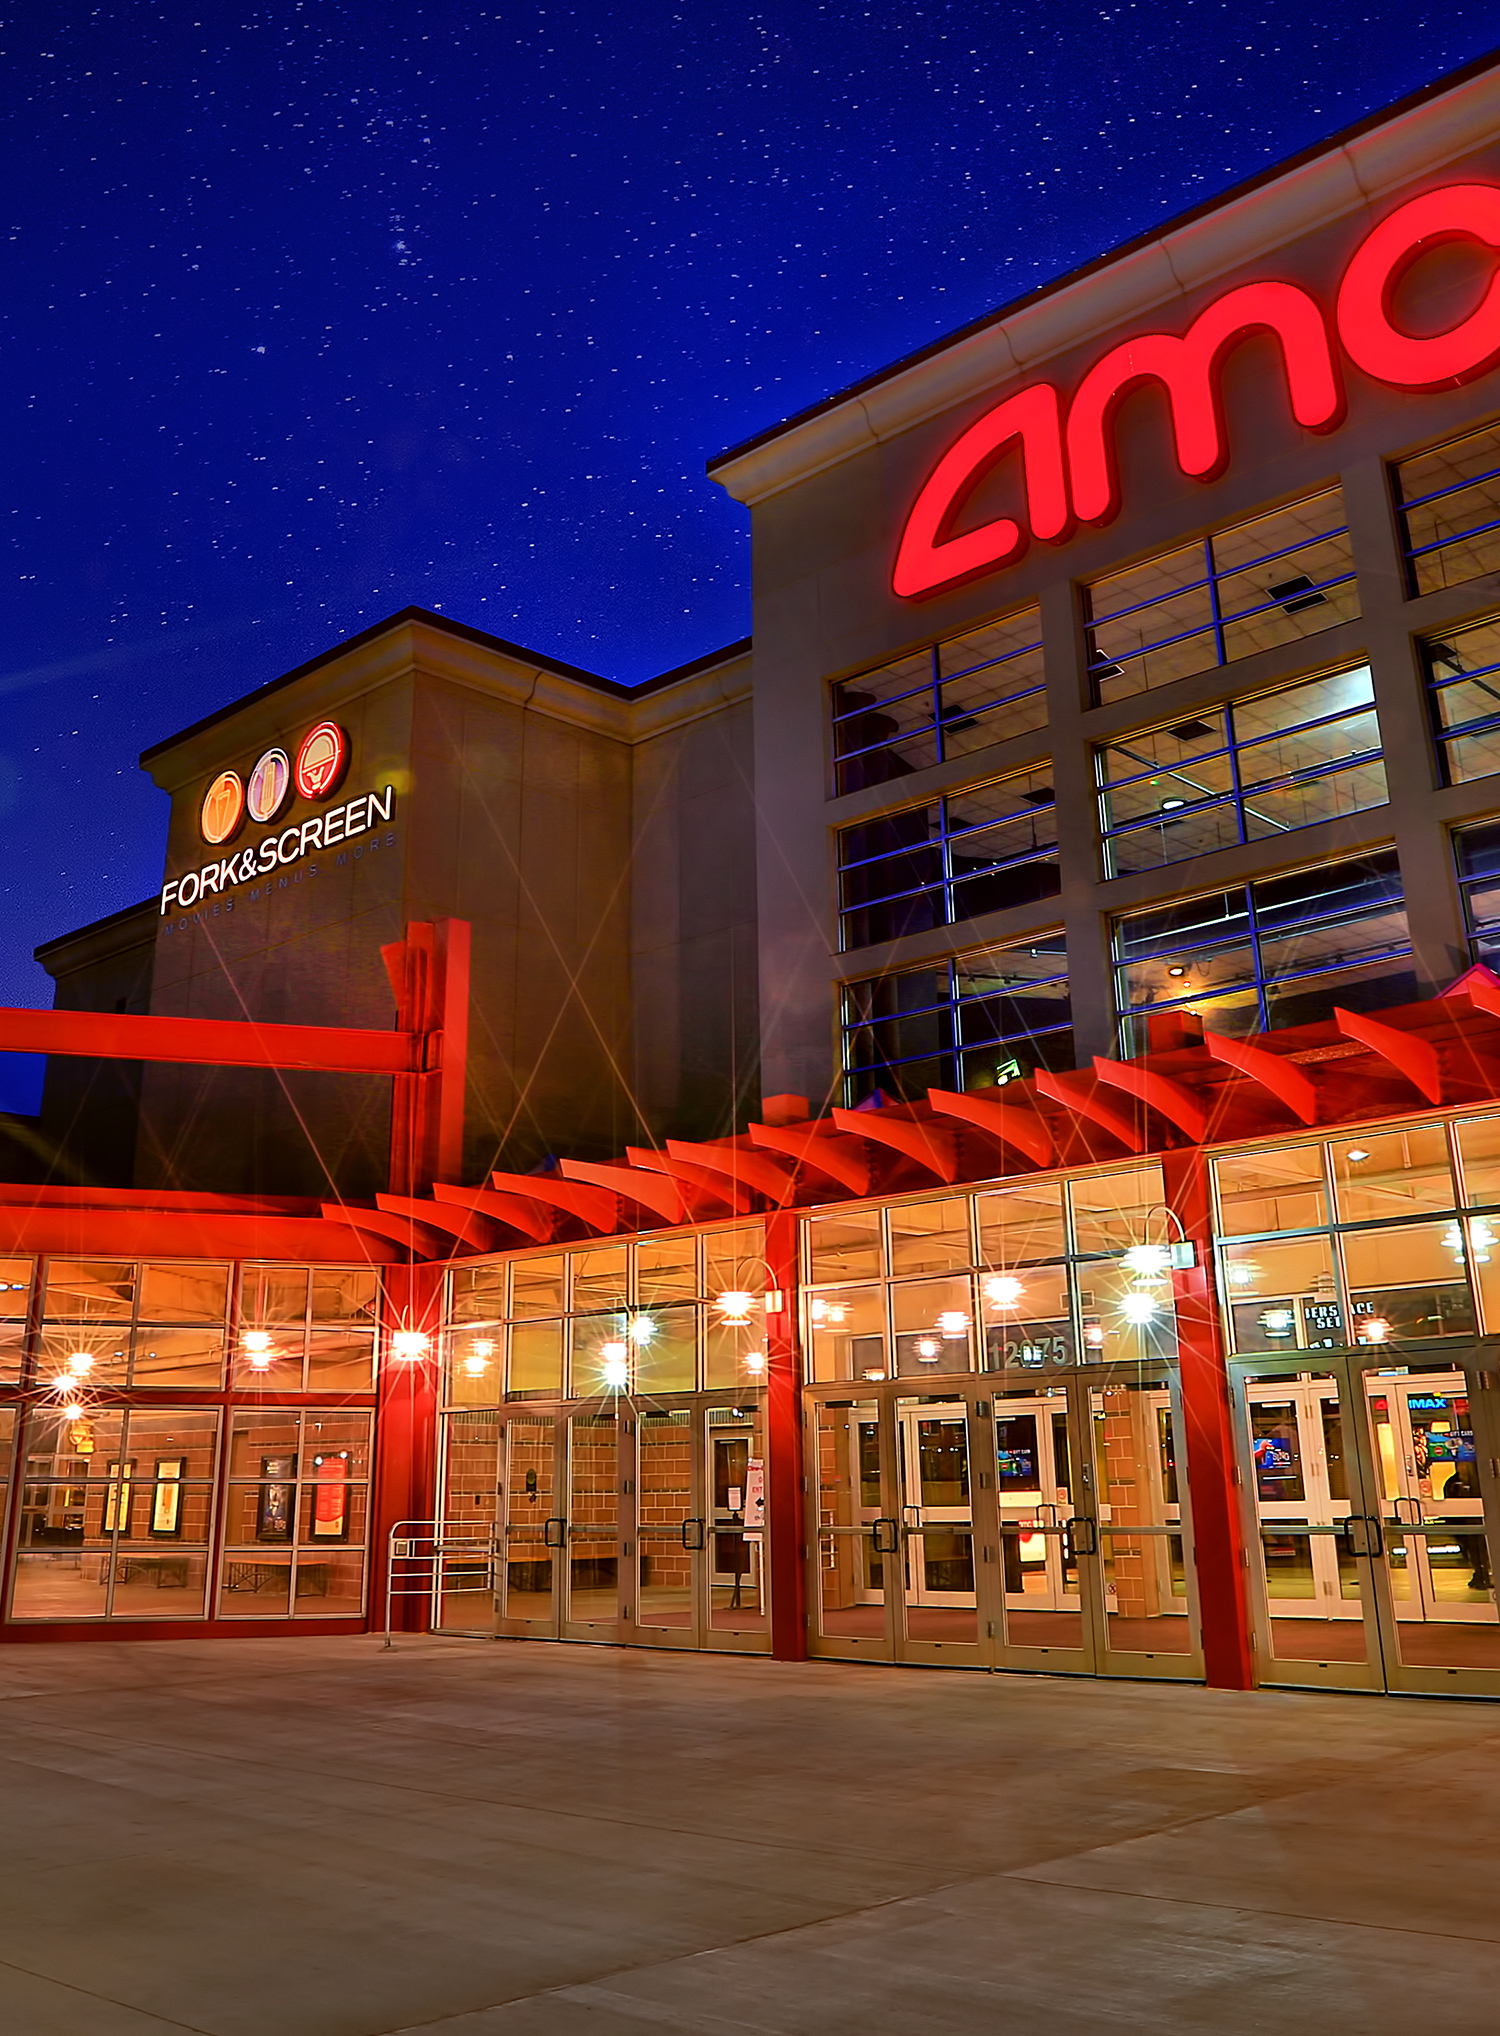 Amc Dine In Studio 28 Full Service Temporarily Suspended Order From The Ordering Station We Ll Deliver To Your Seat Olathe Kansas 66062 Amc Theatres